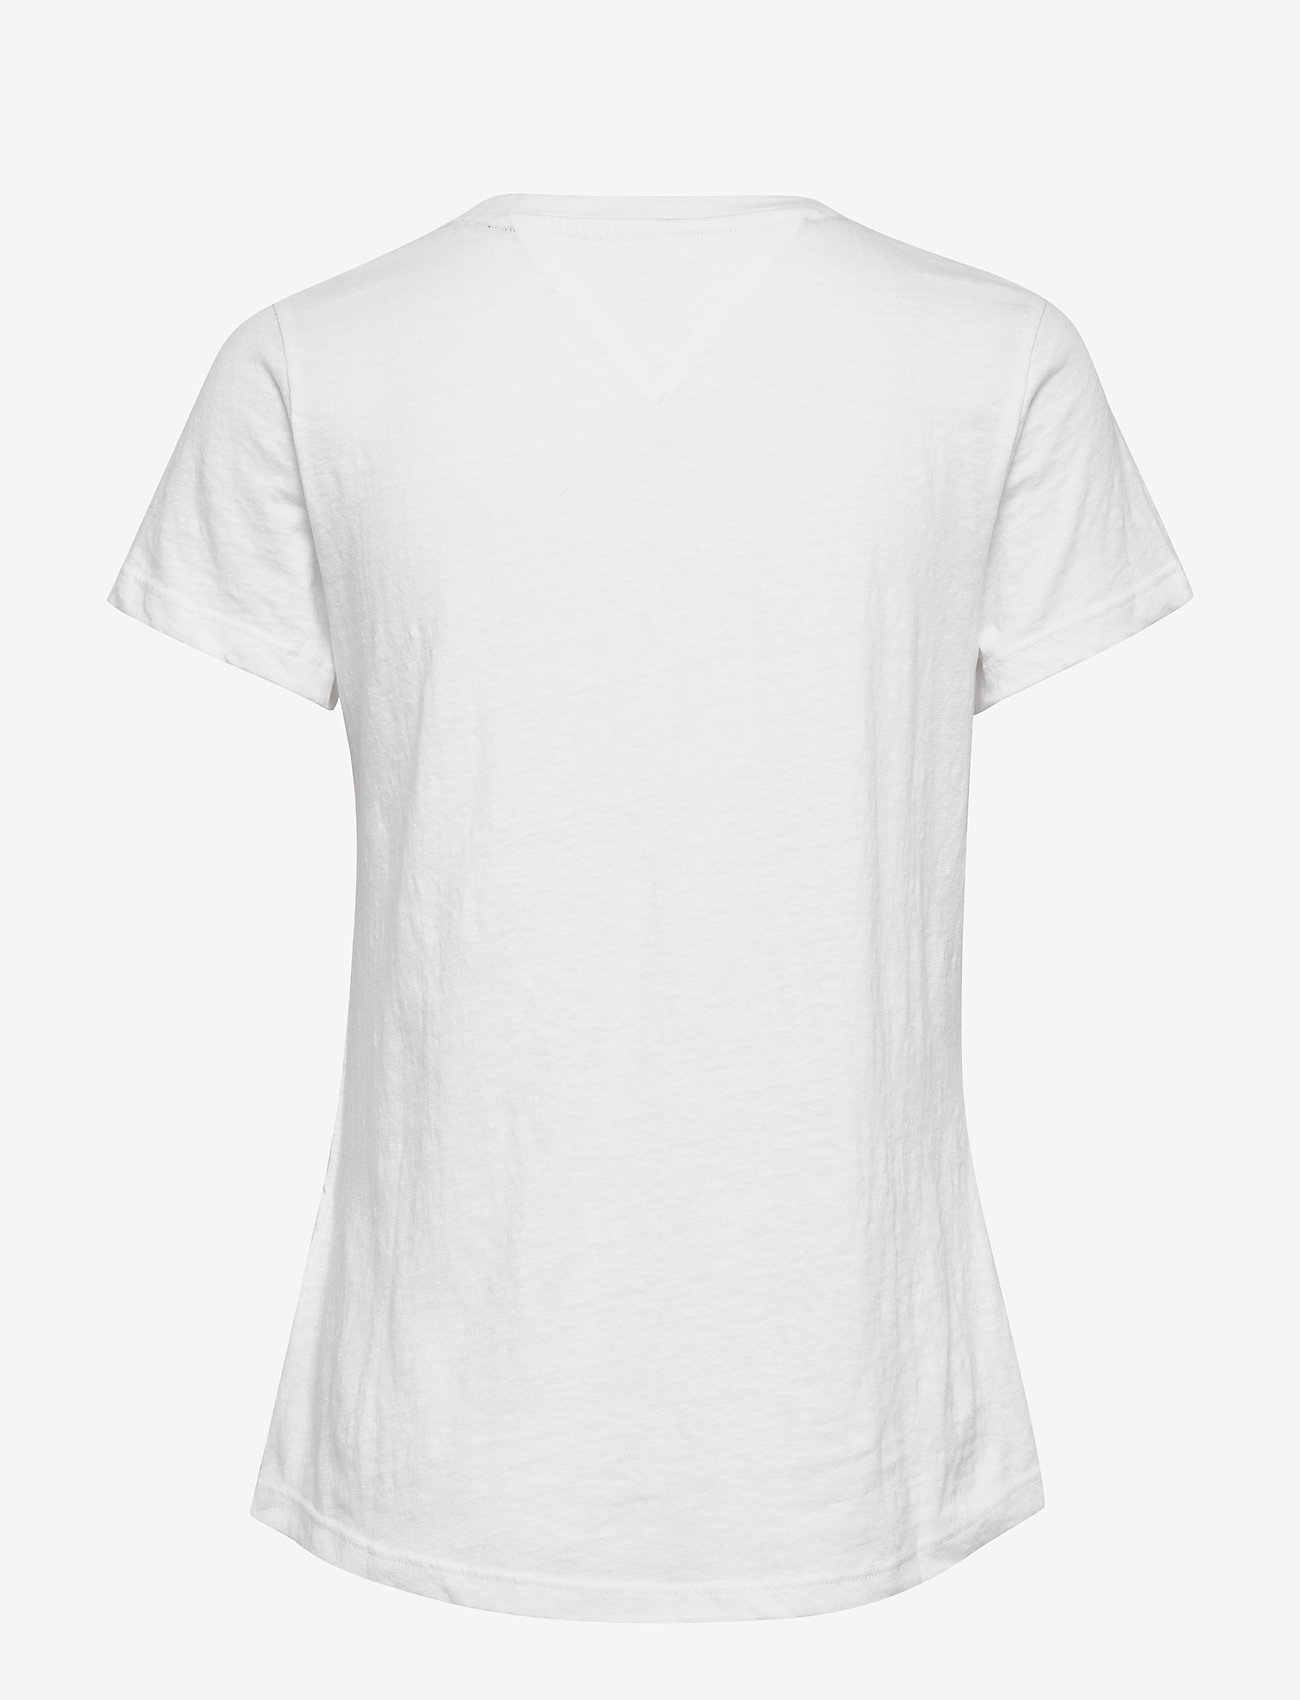 Tommy Jeans - TJW TEXTURE TEE - t-shirts - white - 1